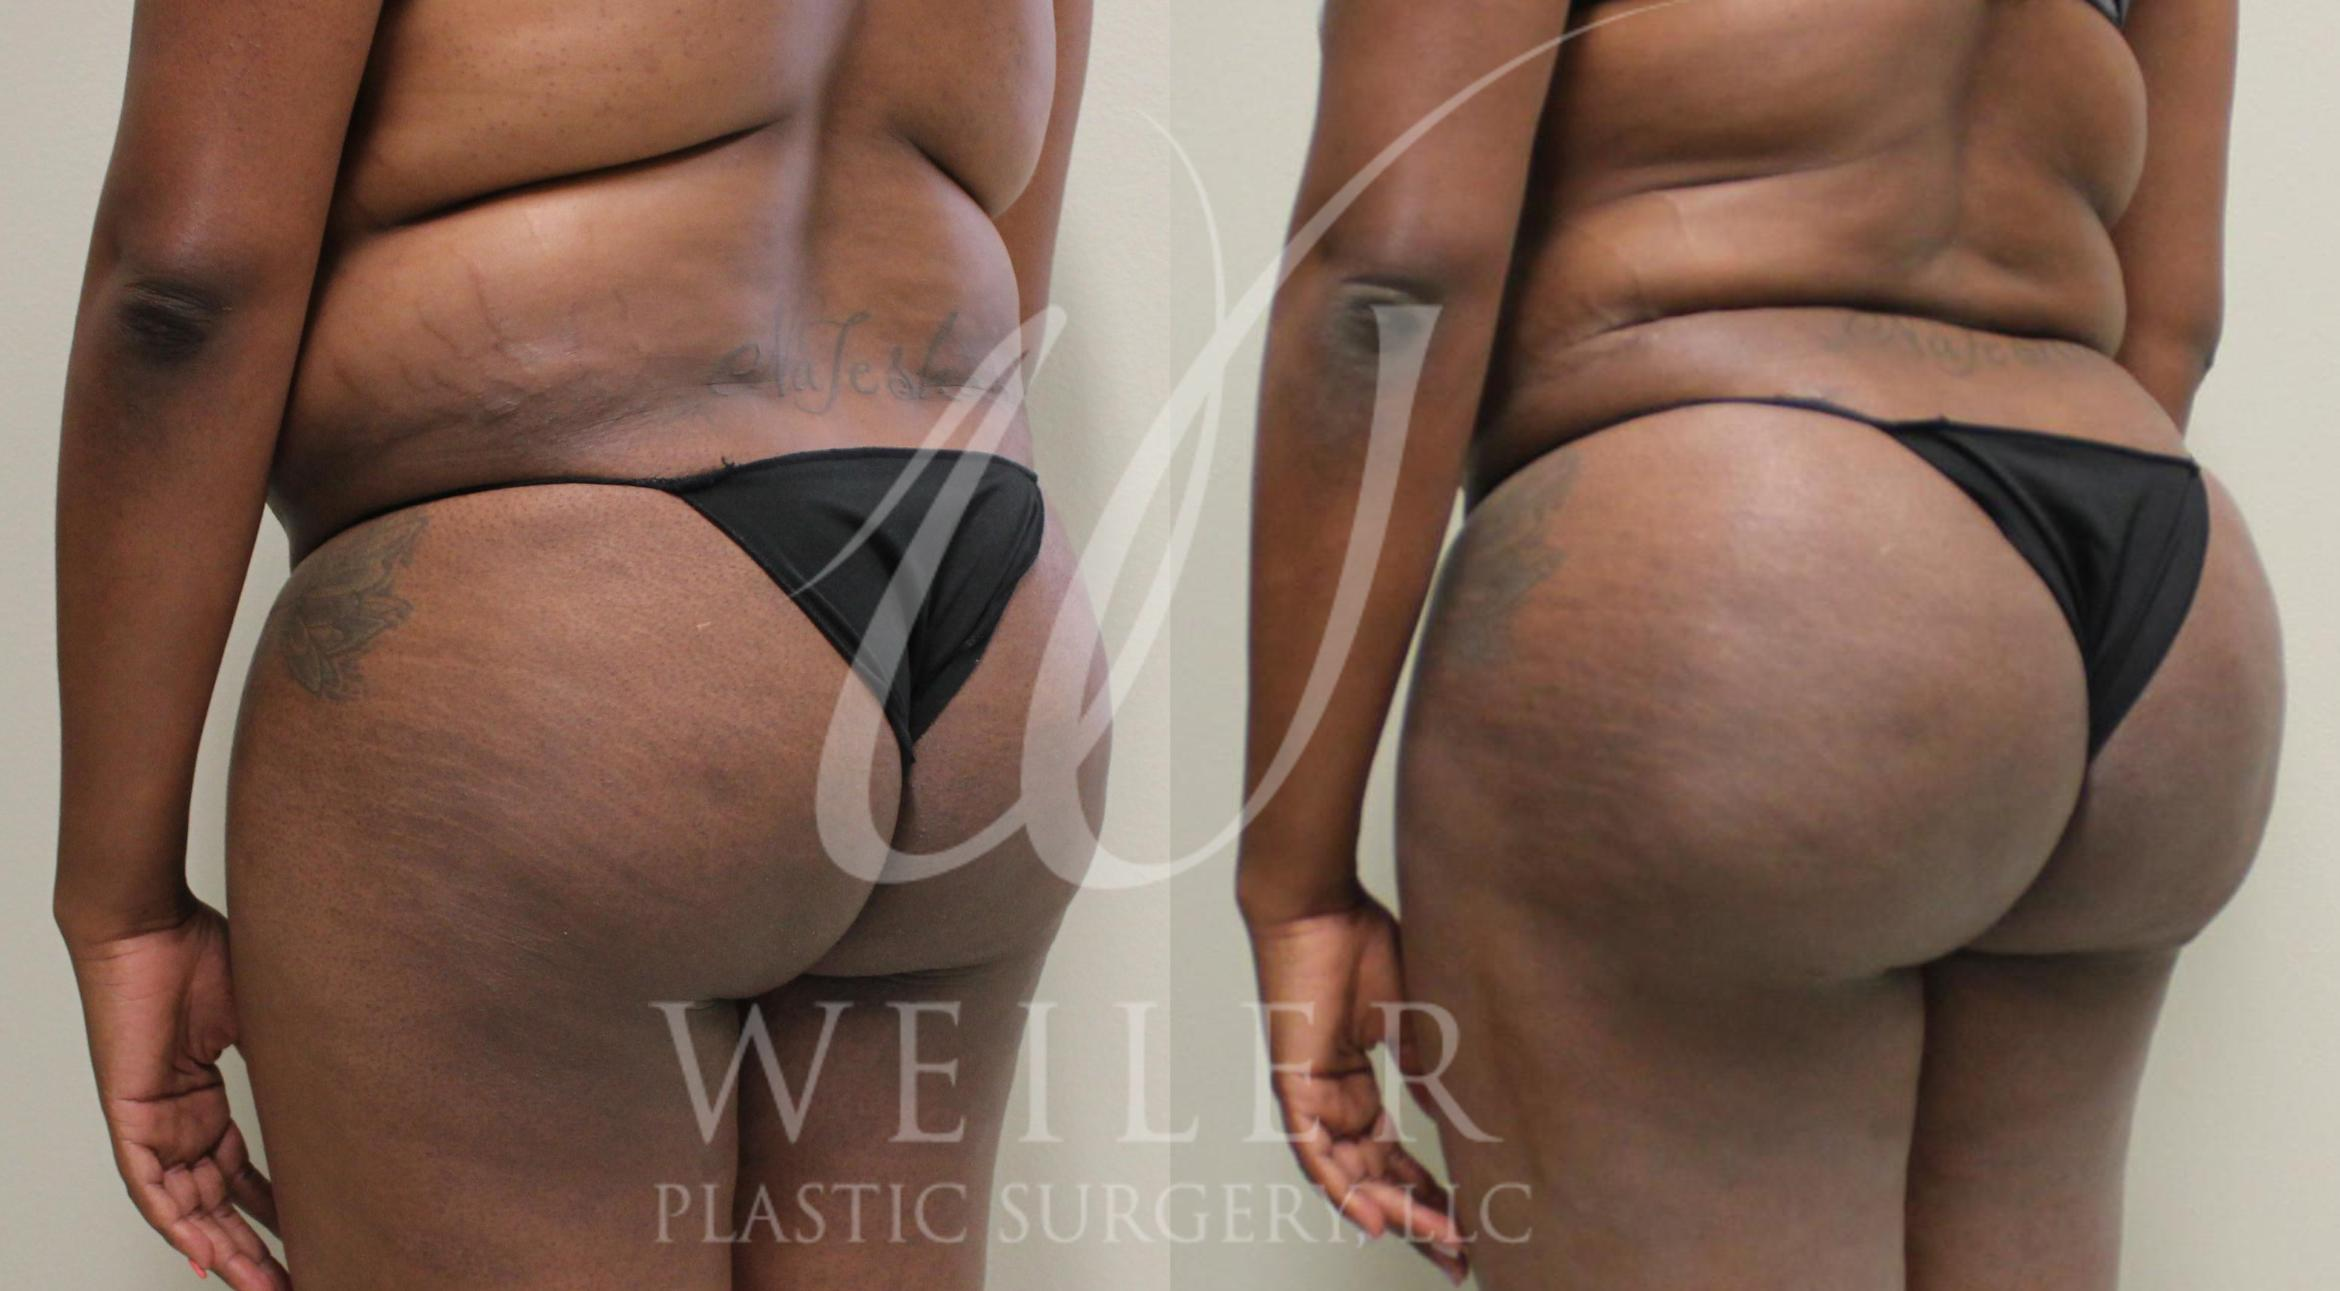 Brazilian Butt Lift Before & After Photo | Baton Rouge, Louisiana | Weiler Plastic Surgery